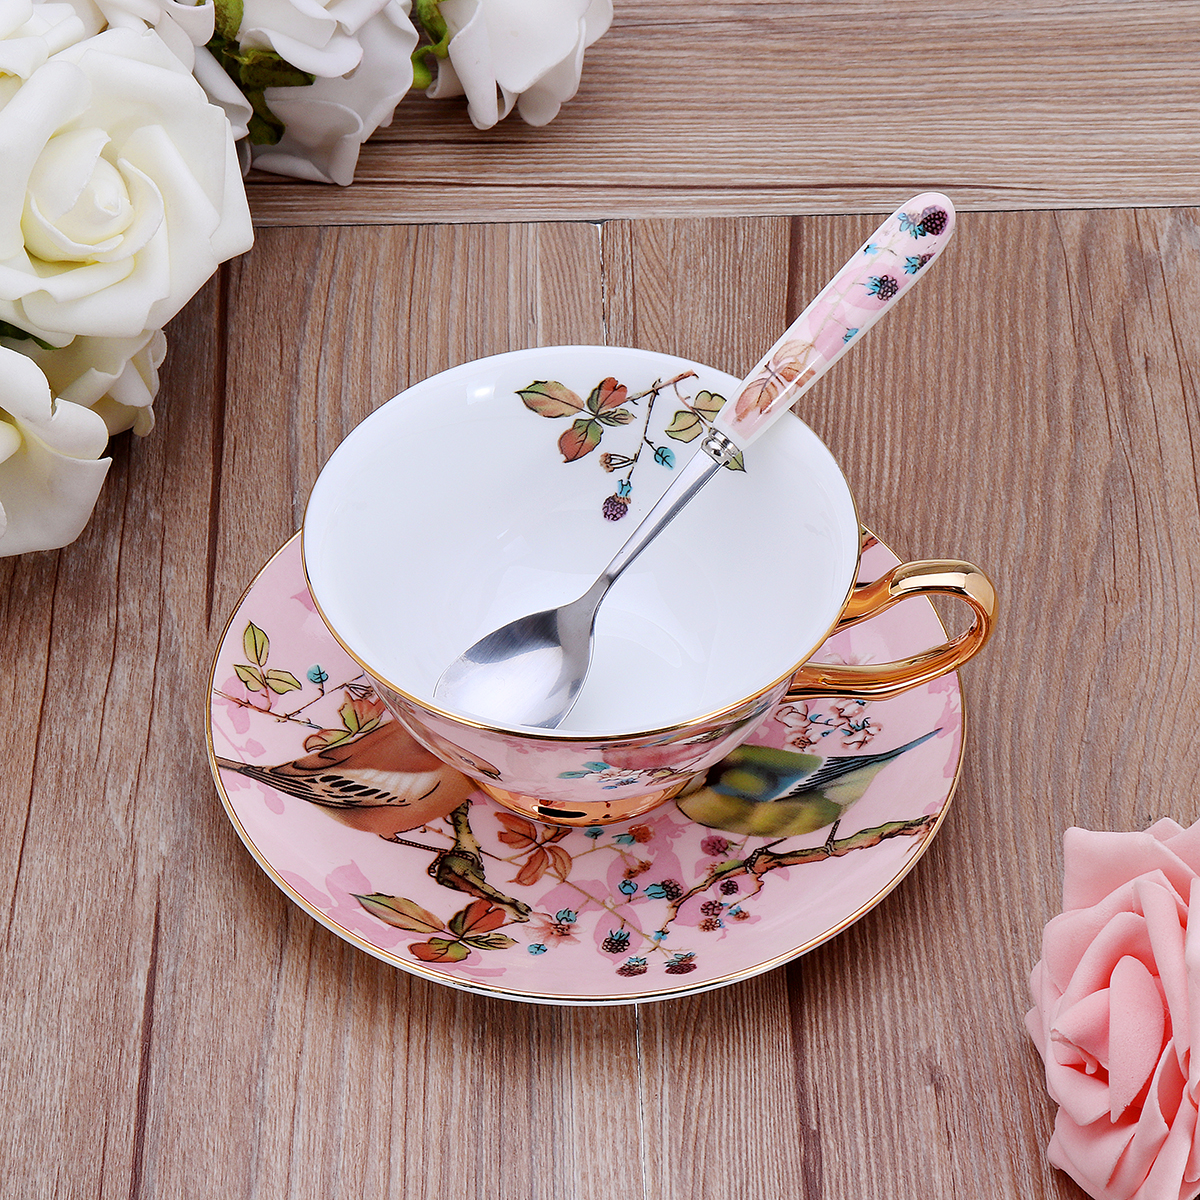 Fine Bone China Tea Coffee Cup Saucer Spoon Set 200ml Luxury Ceramic Mug